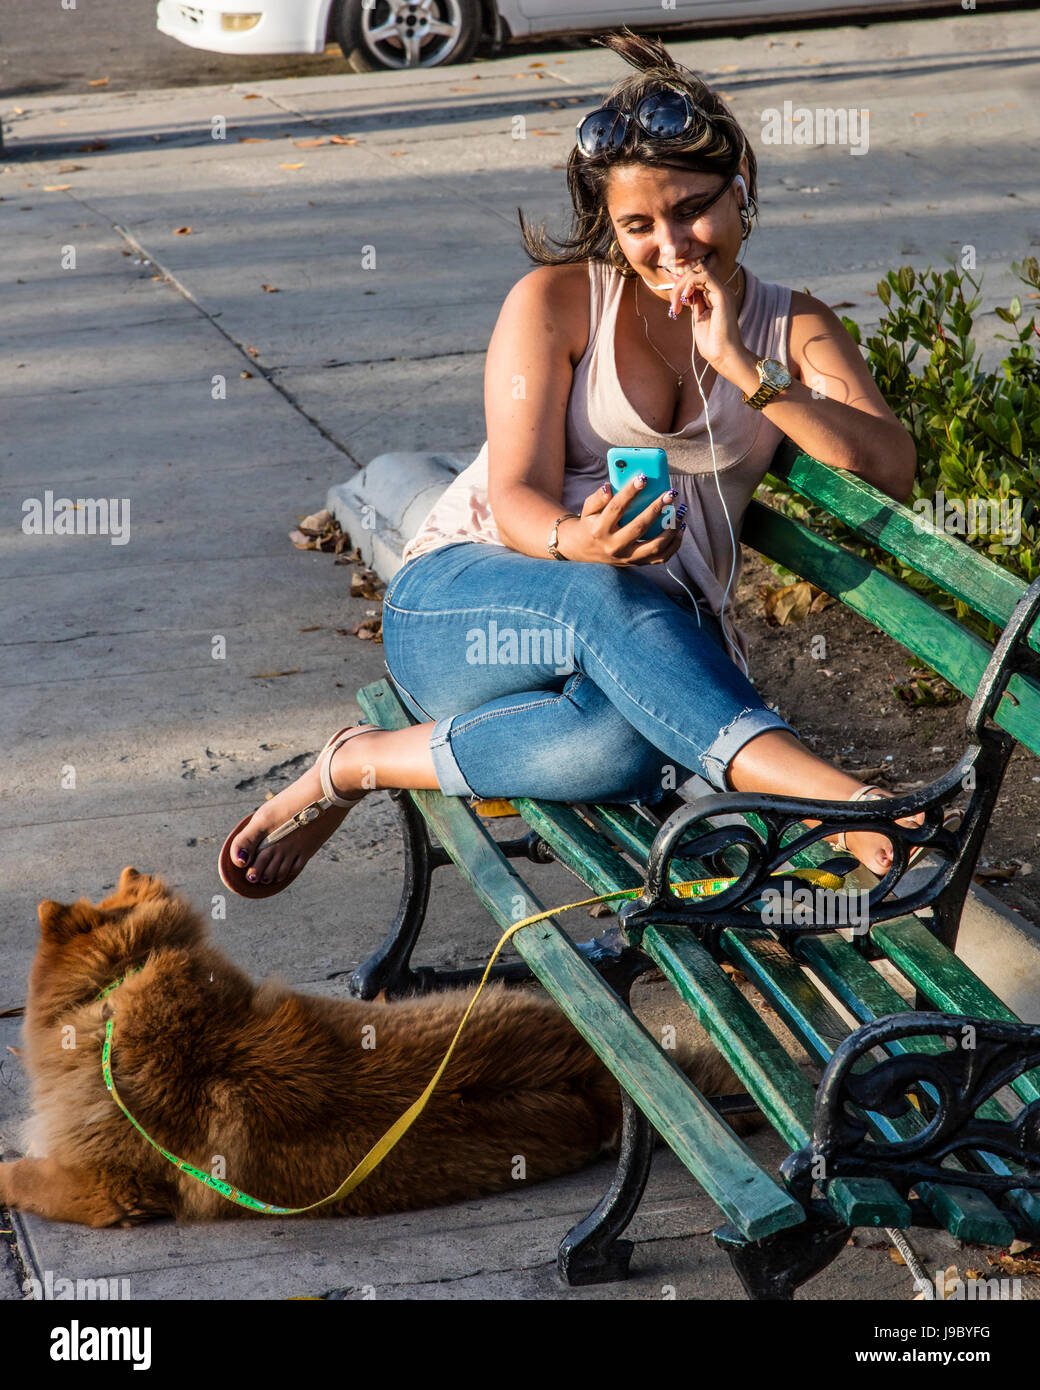 A Cuban woman enjoys talking on her cell phone in the PARQUE JOSE MARTI - CIENFUEGOS, CUBA - Stock Image